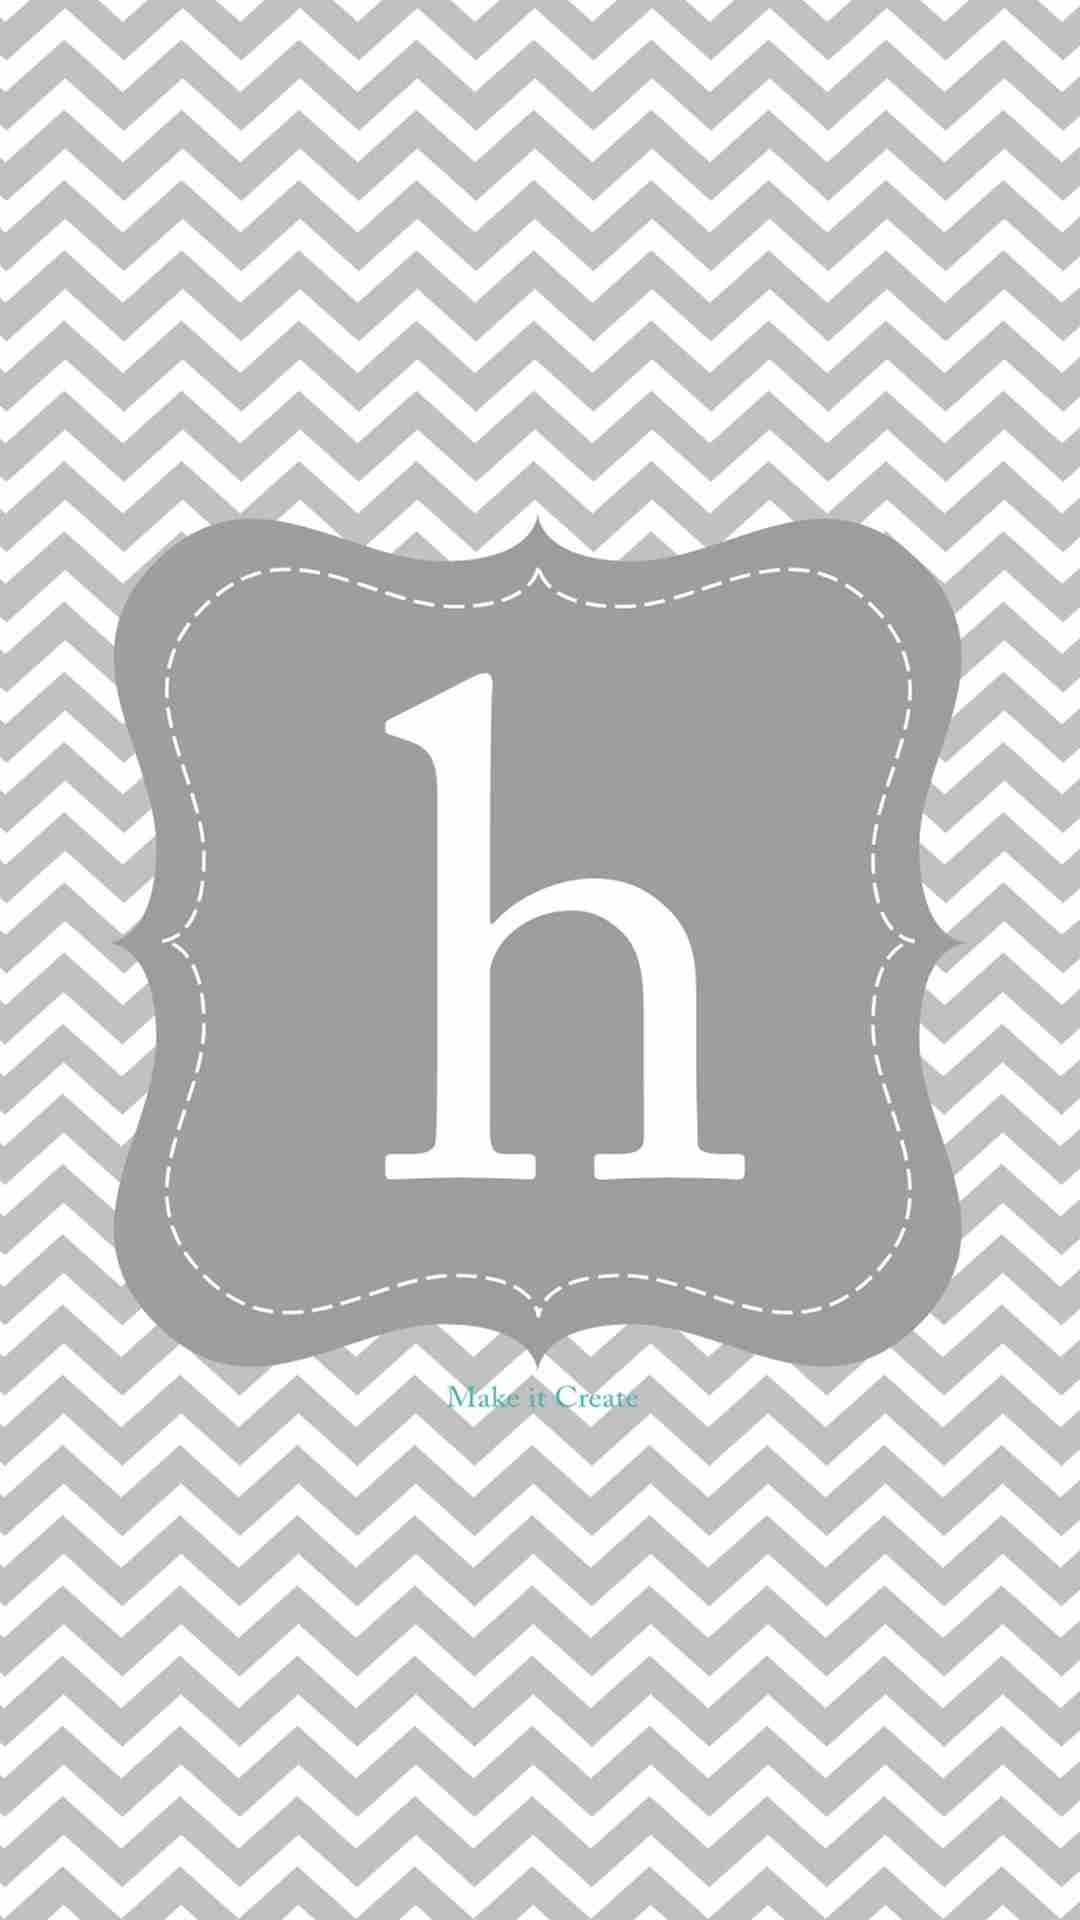 monogram h grey square chevron iphone 6 plus wallpaper